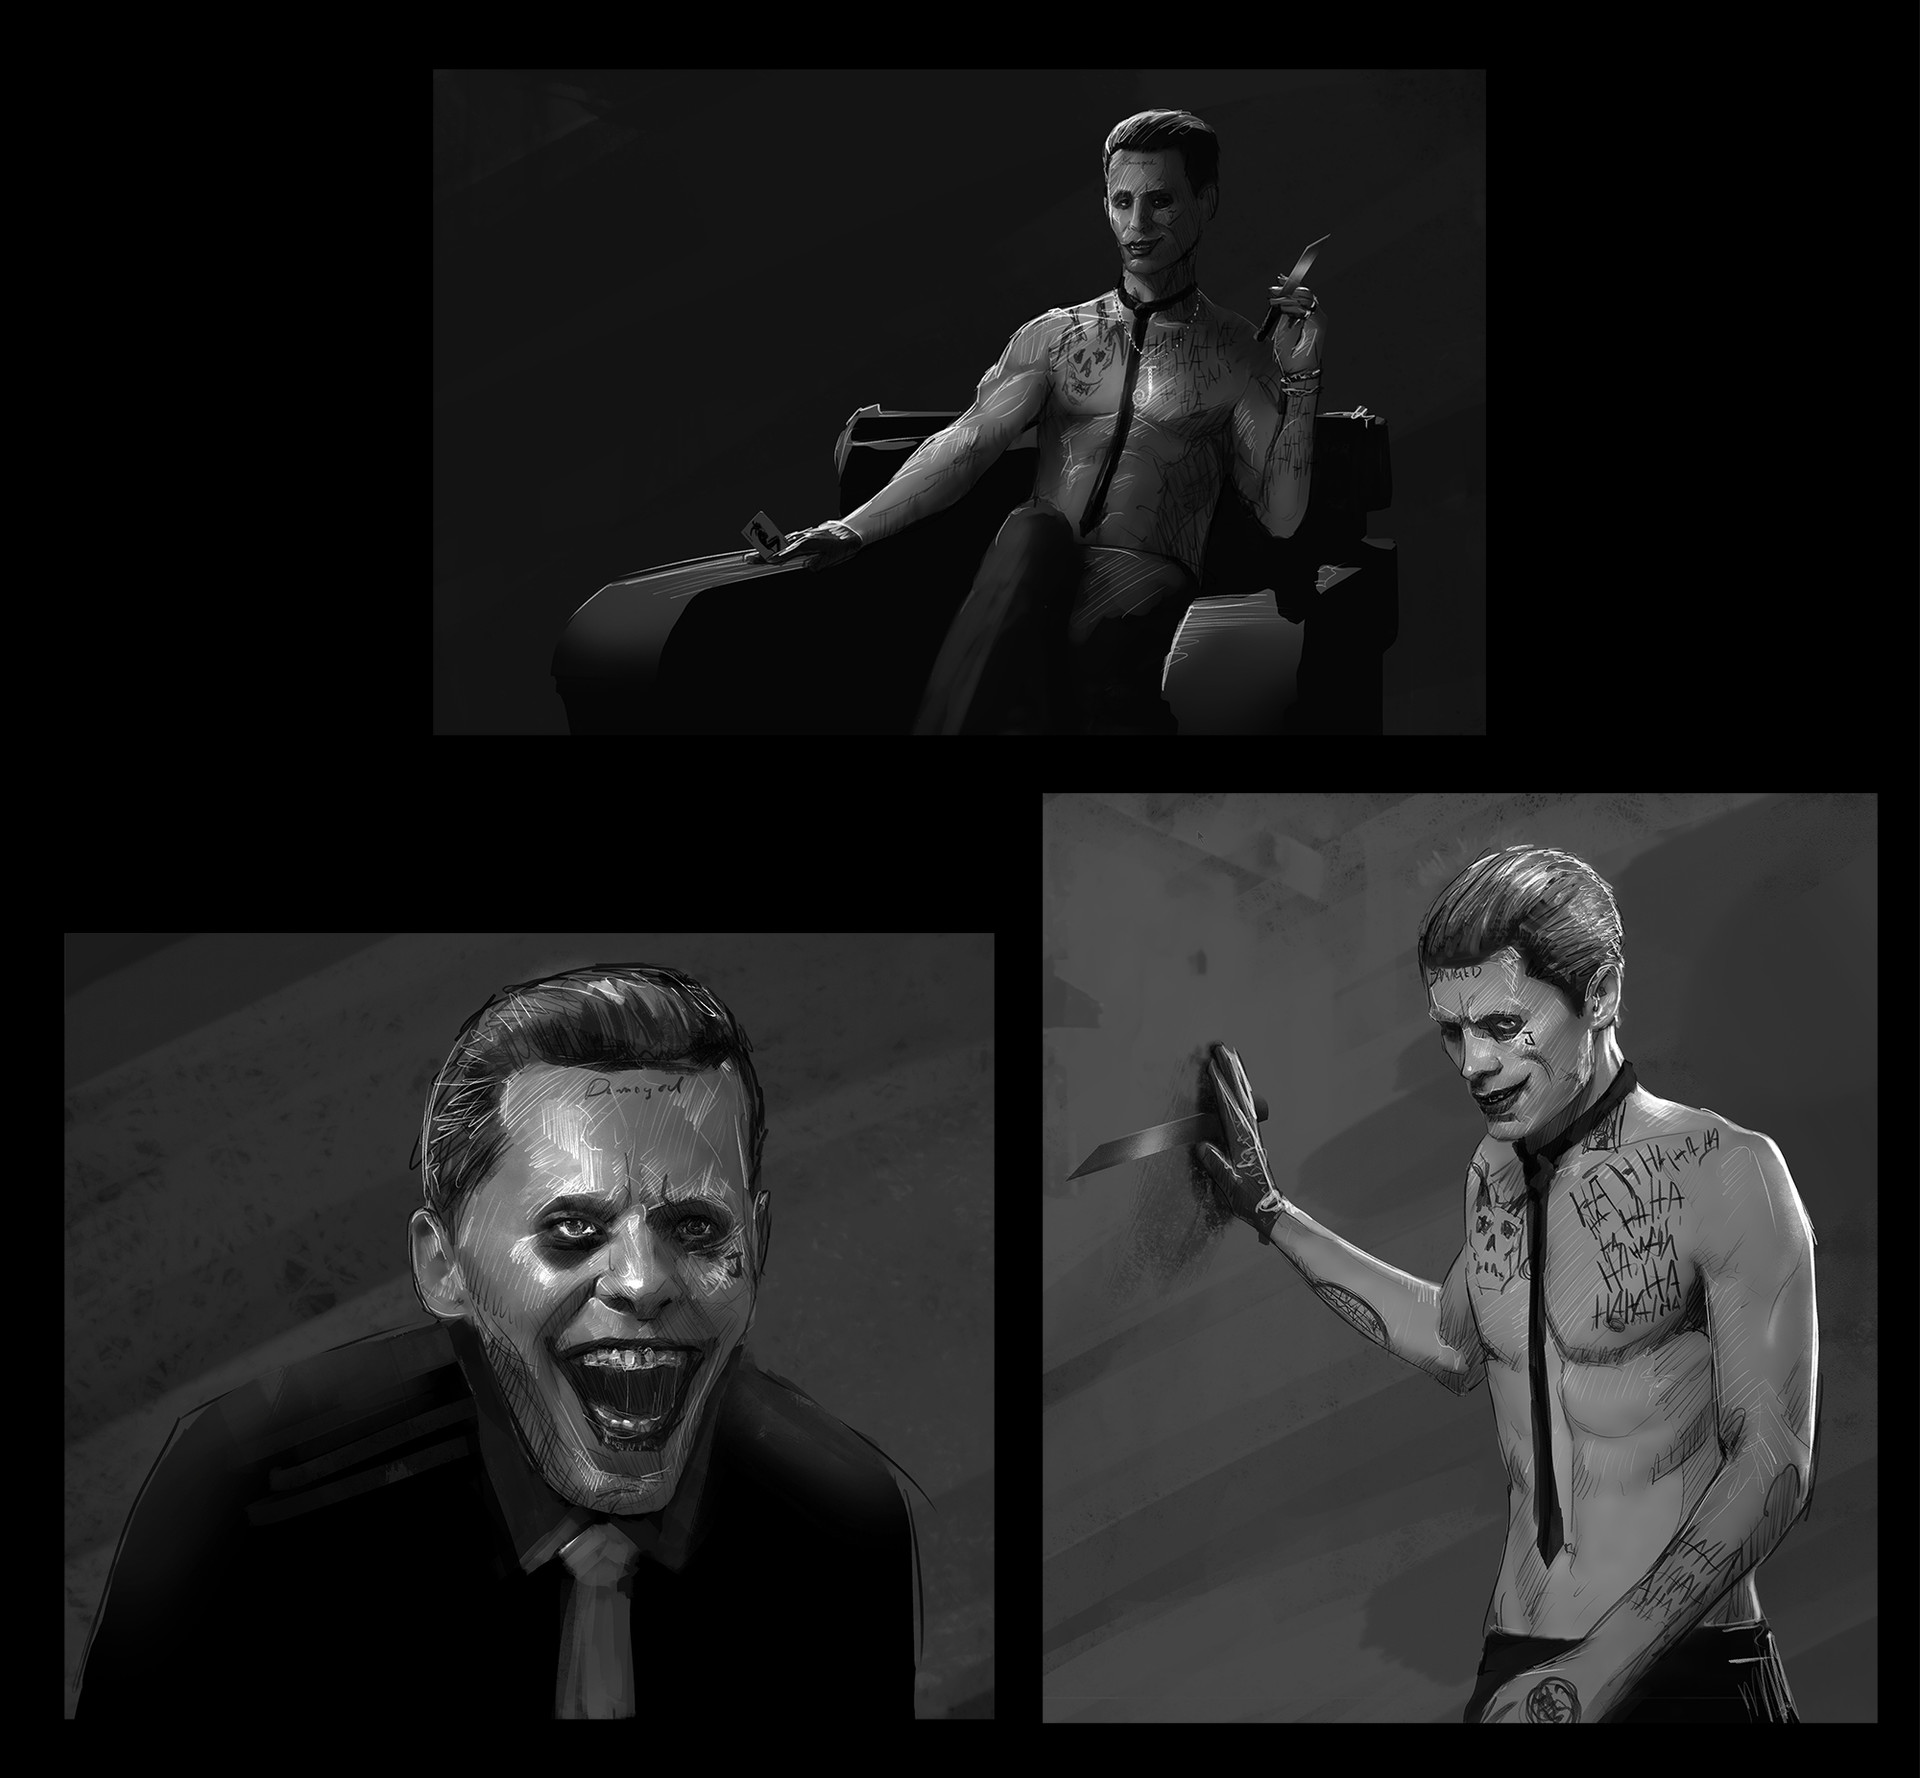 andrew-hunt-suicide-squad-joker-sketches